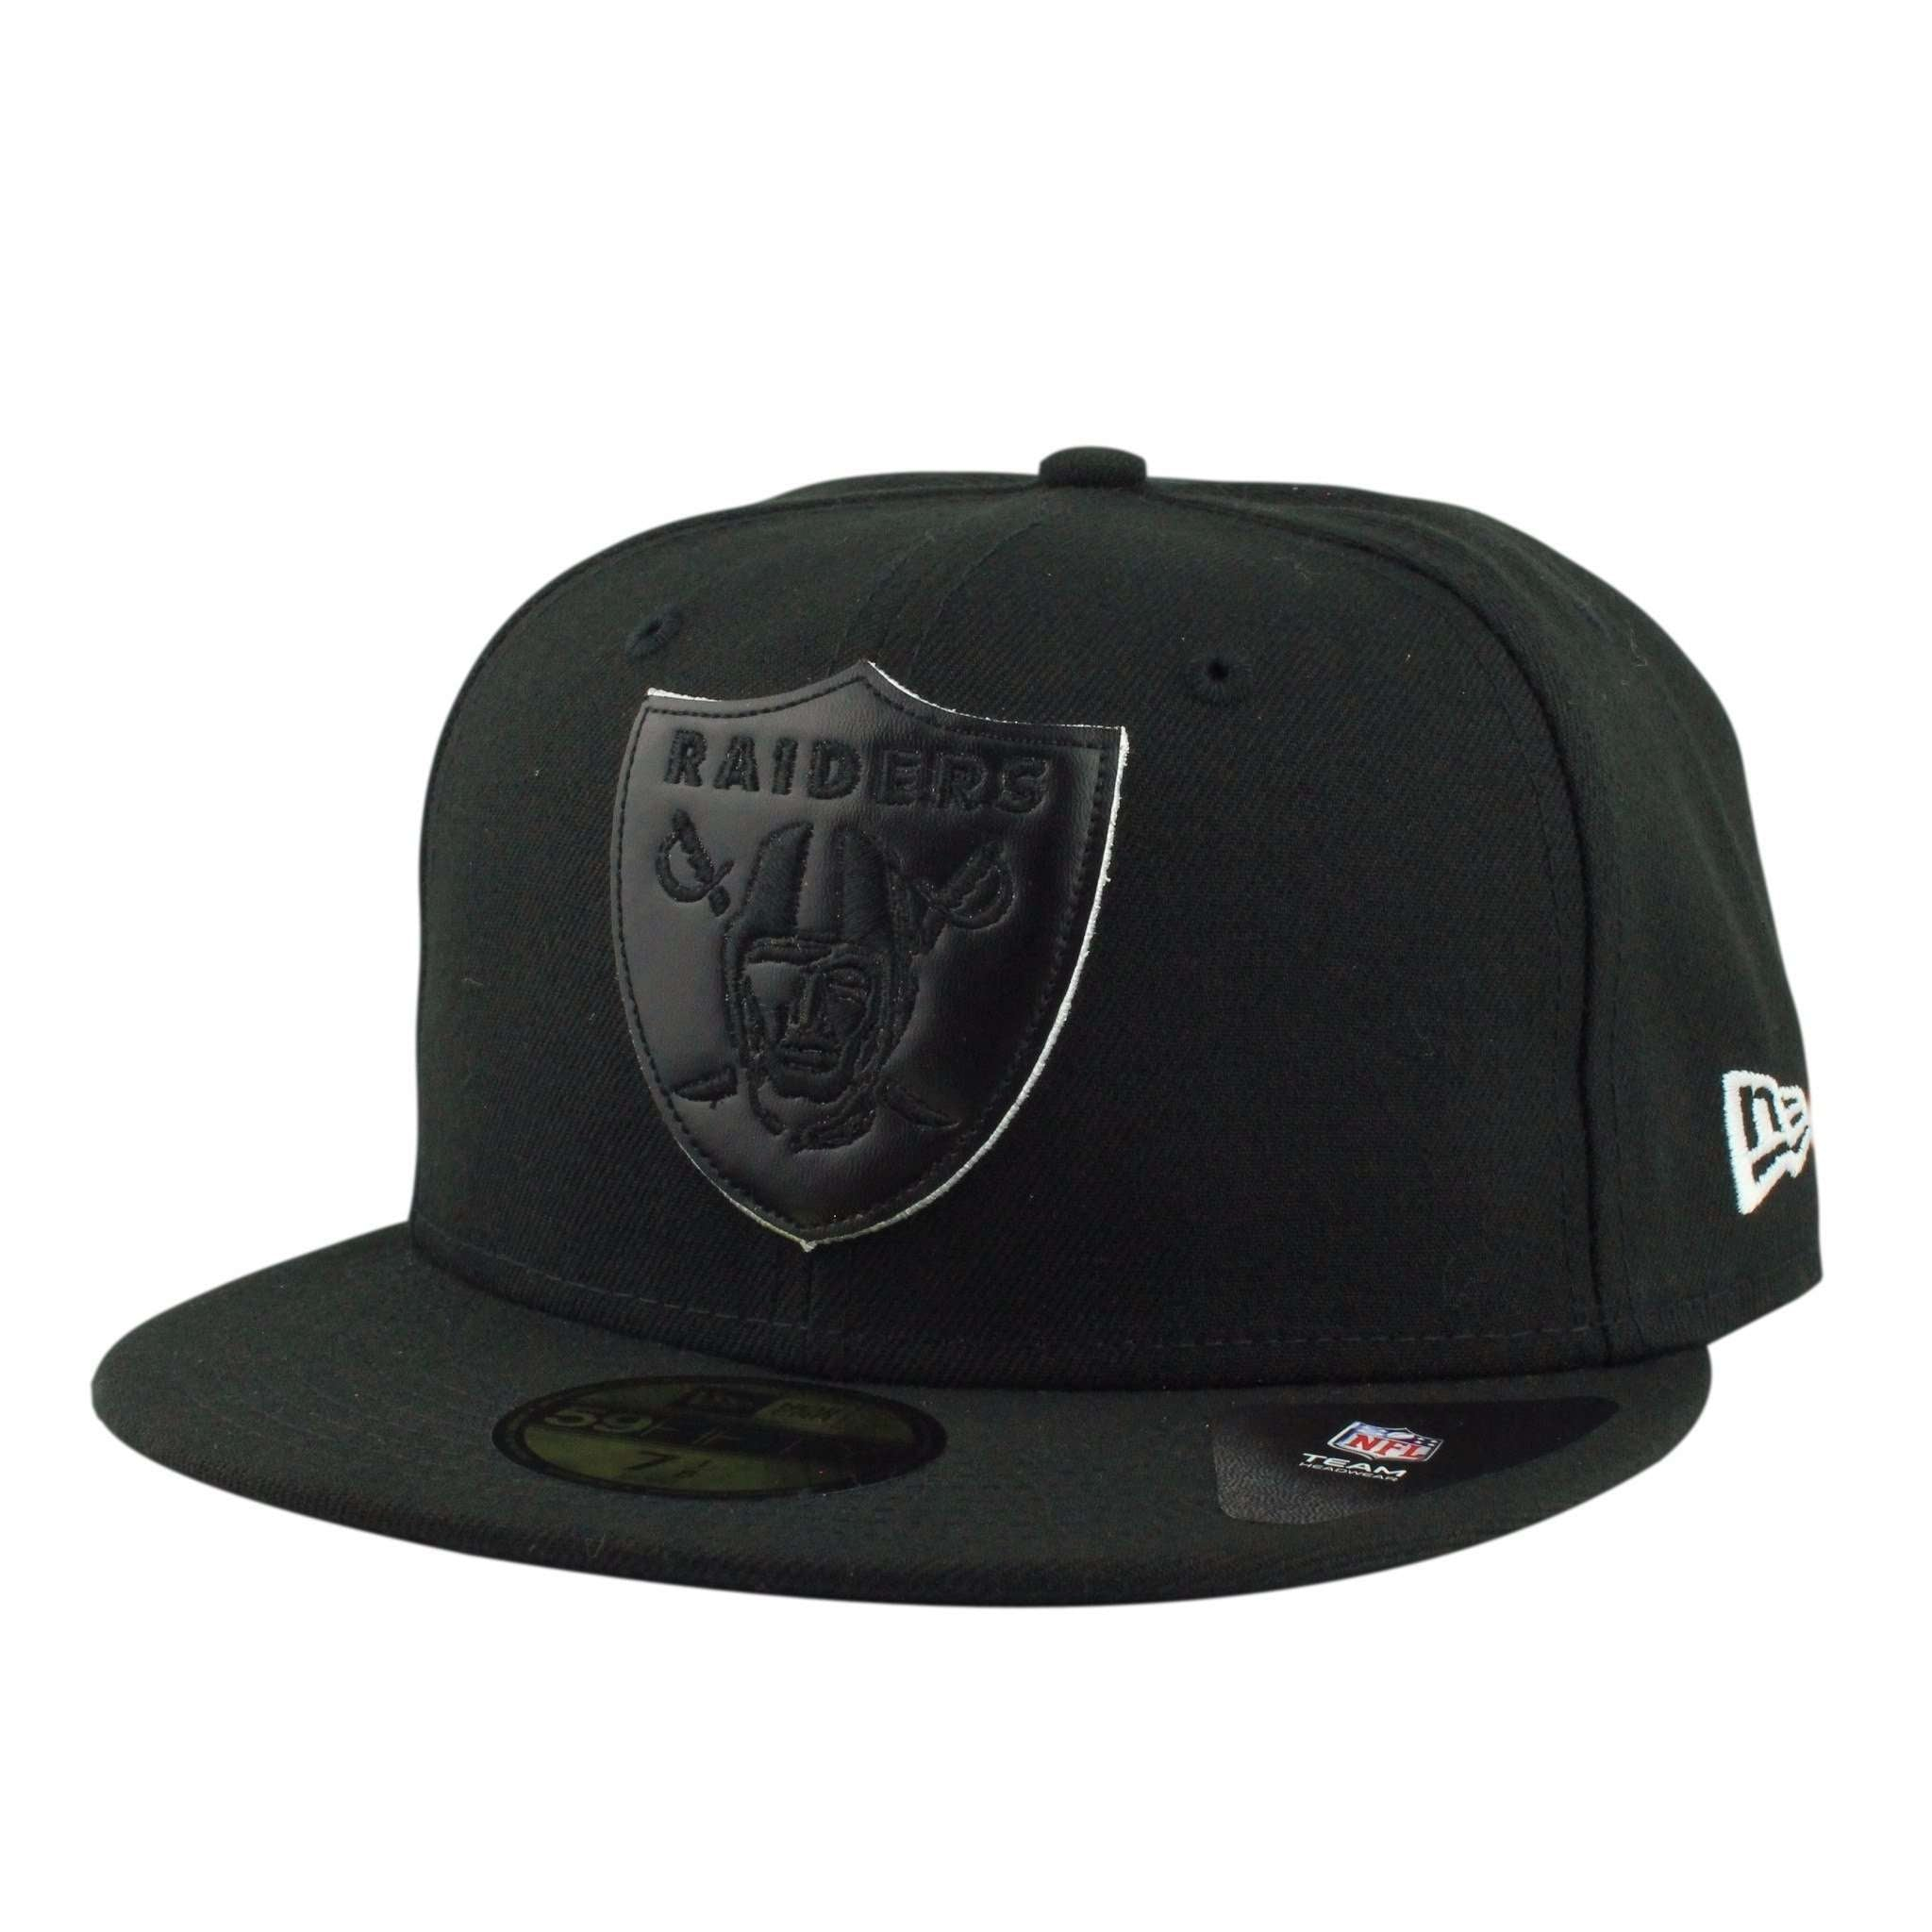 Oakland Raiders Leather Pop Black Black Fitted  b217439e9